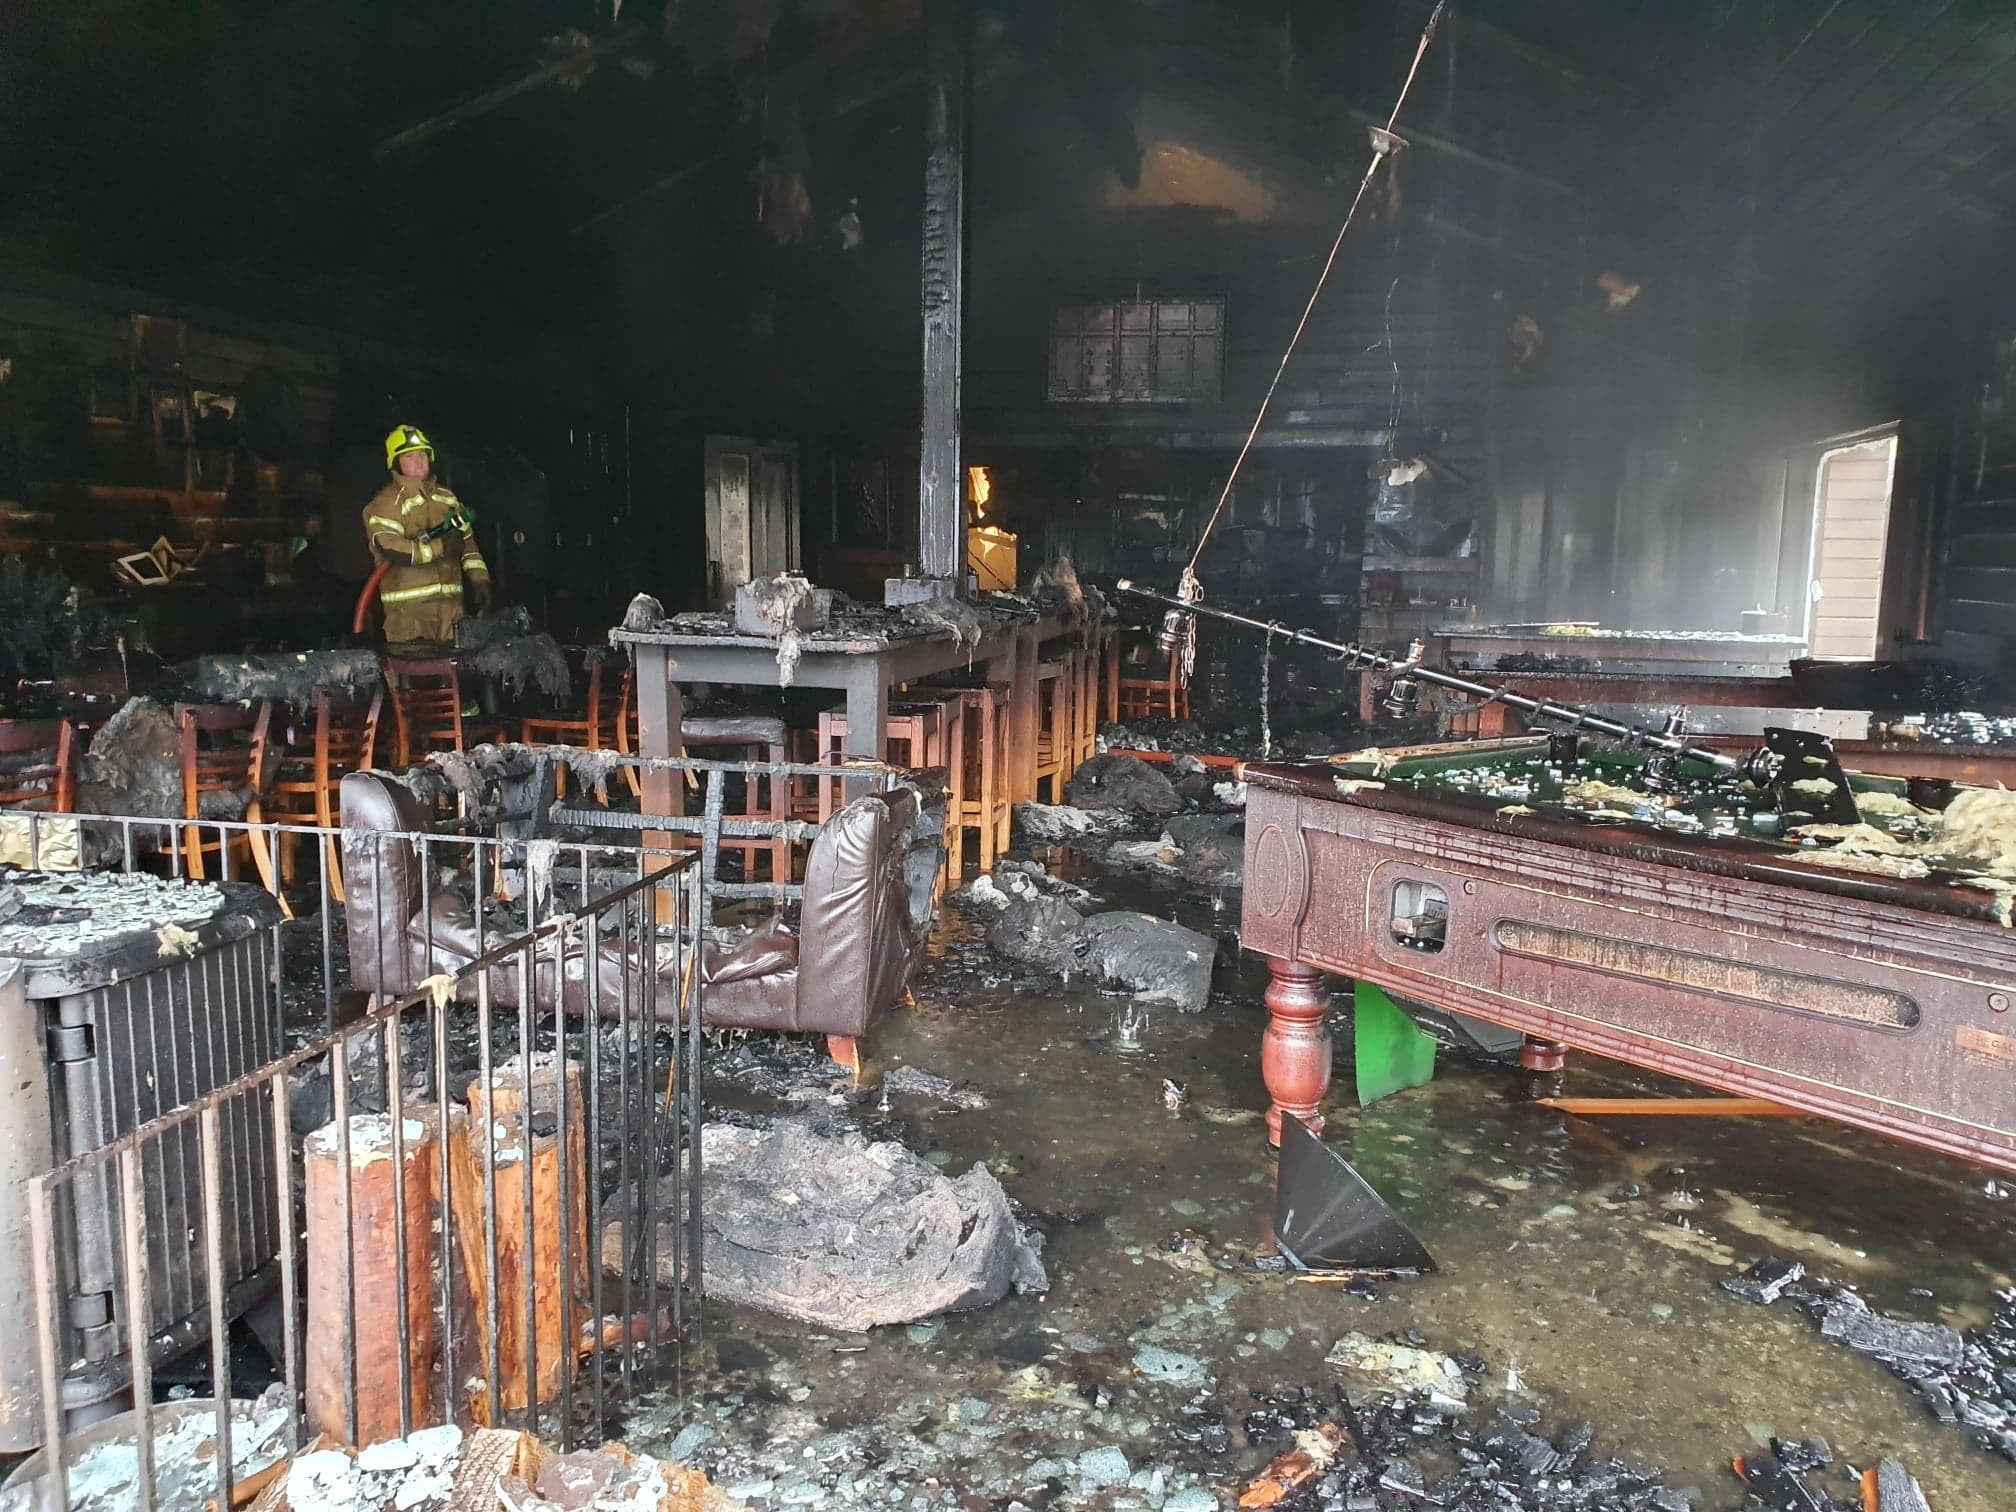 The fire torn building at the ski resort. Picture credit: Glencoe Mountain Resort